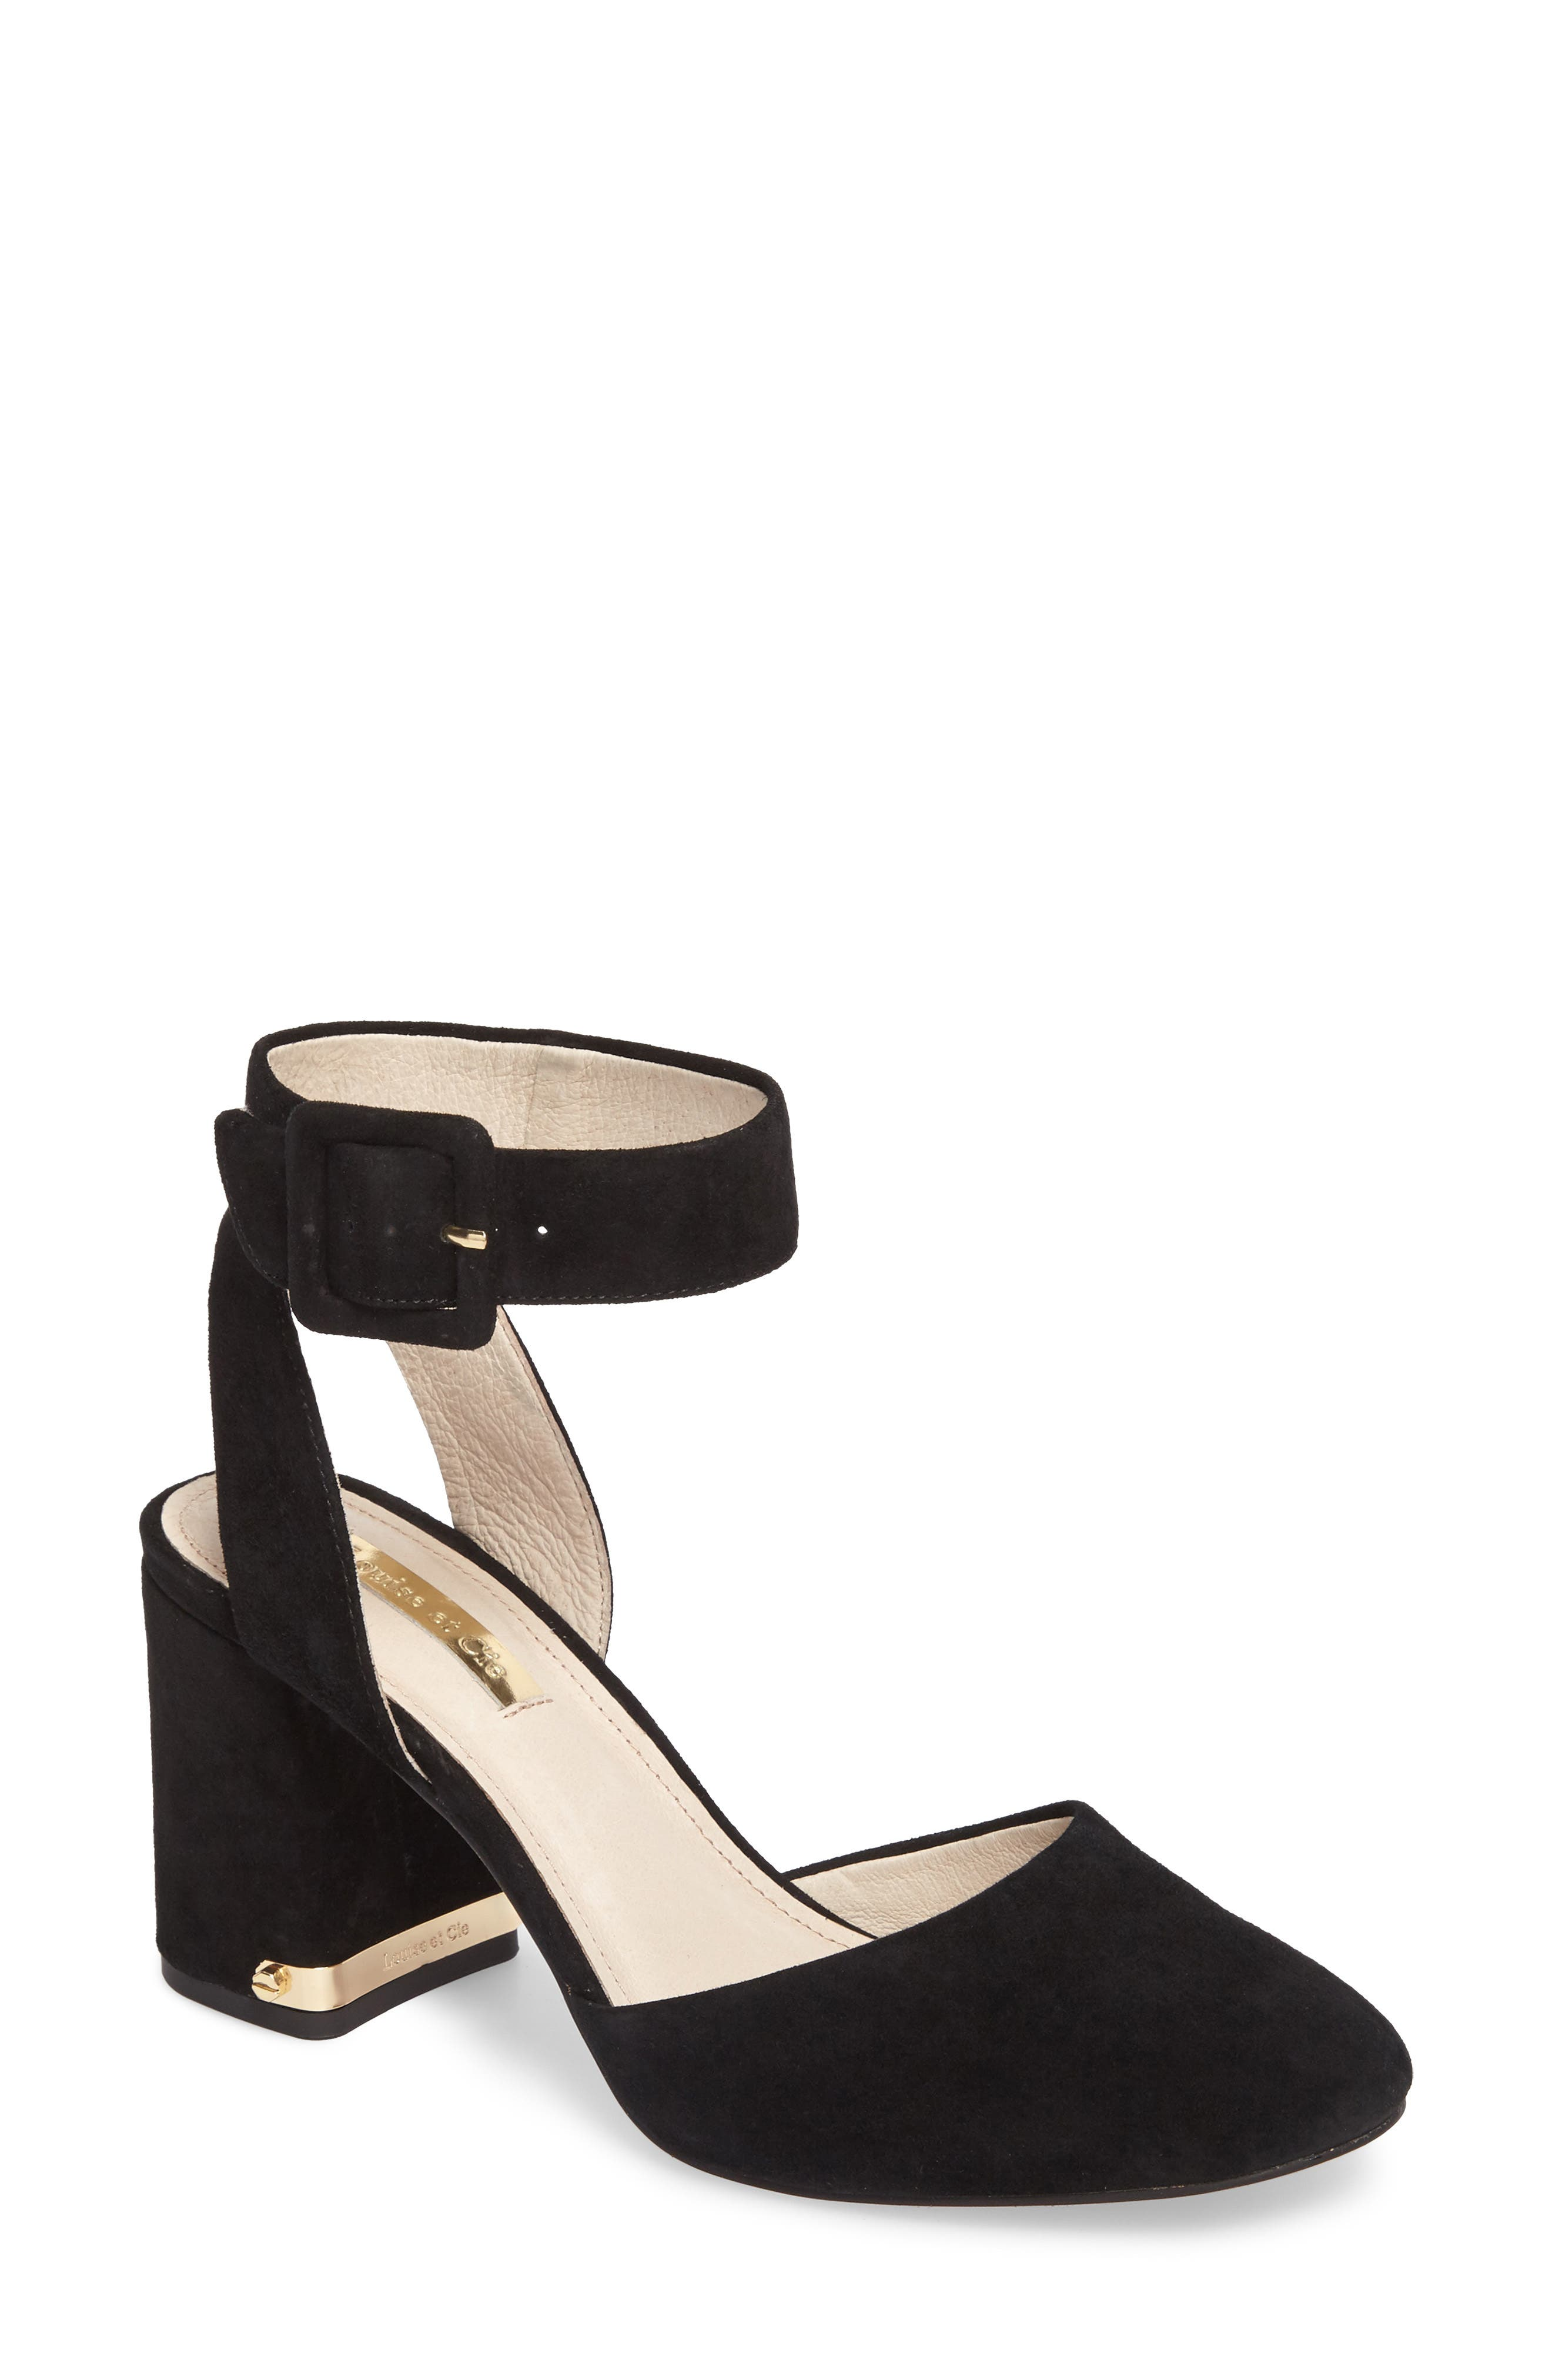 Alternate Image 1 Selected - Louise et Cie Ines Ankle Strap Pump (Women)